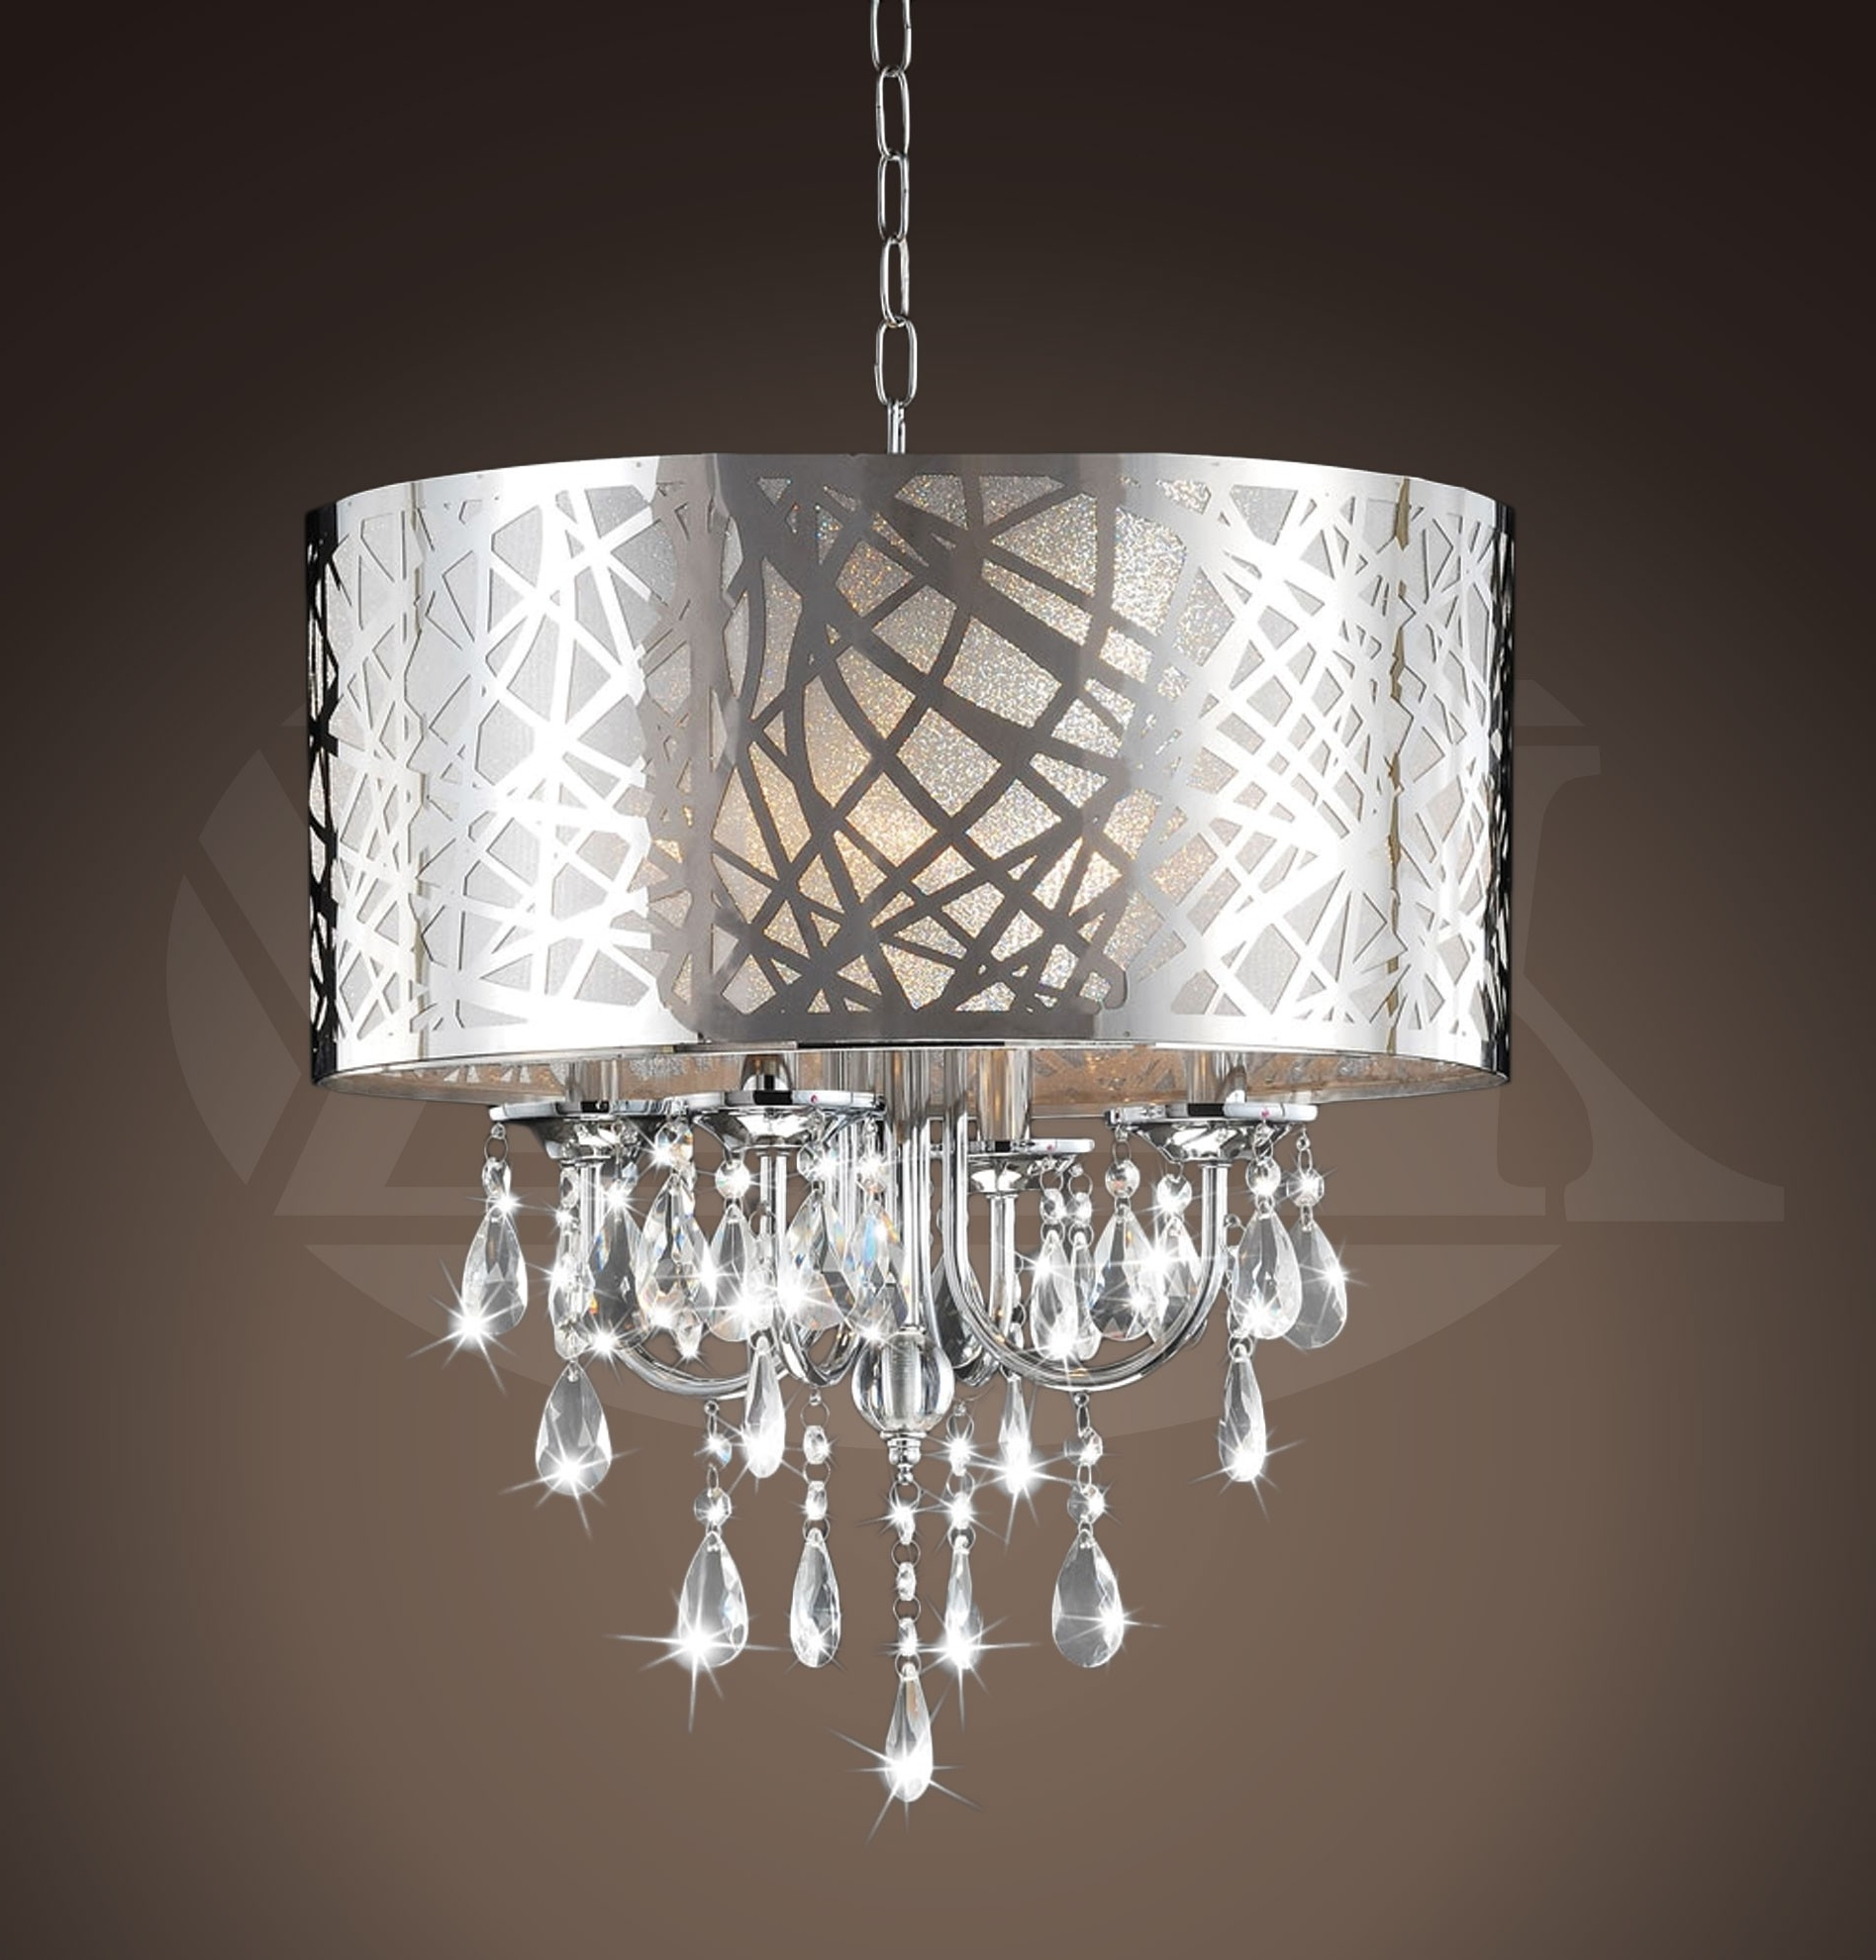 "Preferred Design 4 Light Chrome Crystal Chandelier (16""wx20""h) Xtkbcm030Sc4X For 4 Light Chrome Crystal Chandeliers (View 16 of 20)"